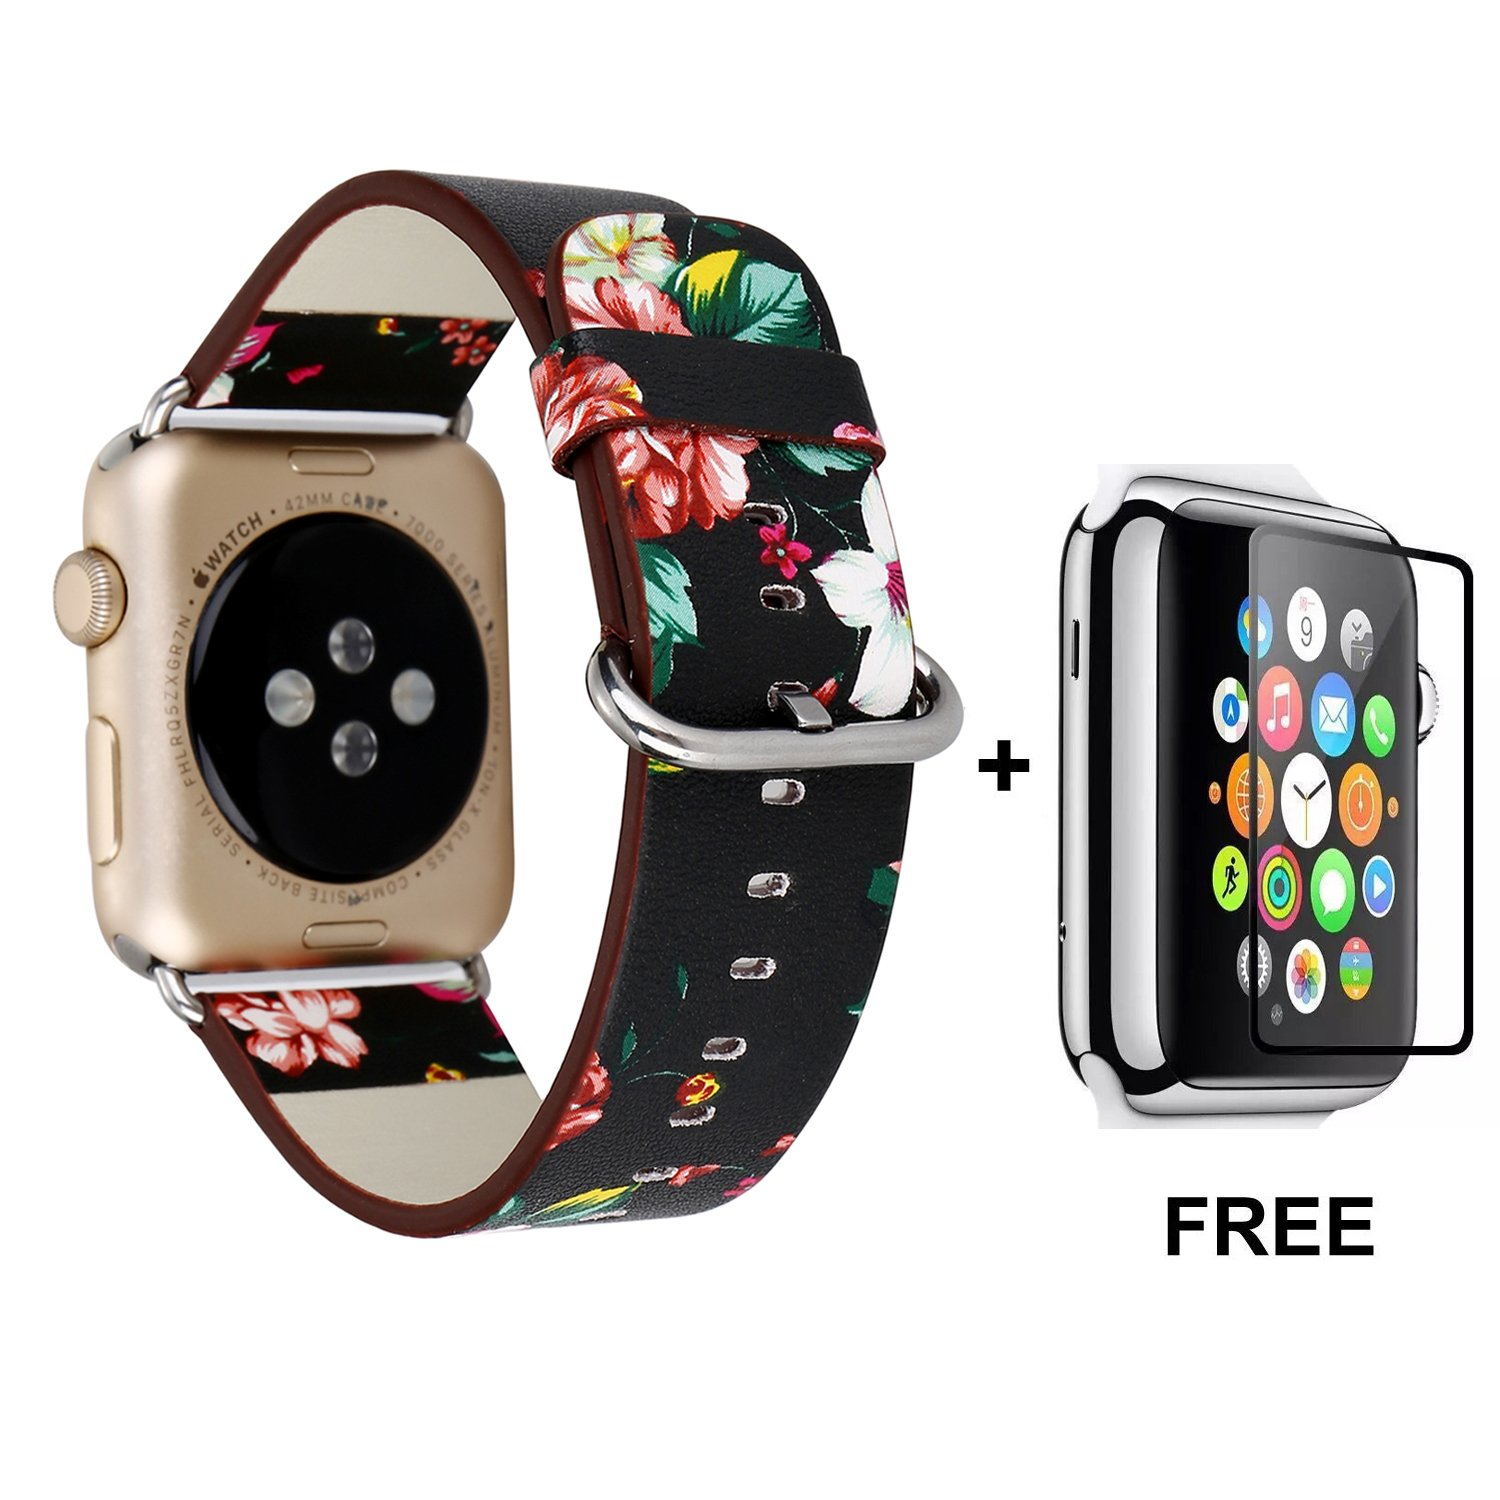 huge selection of 4d9f0 0e4cf for Apple Watch Band with Free Tempered Glass Screen Protector 42mm,  Jimbird Soft PU Leather Replacement Strap Wrist Band for Women Nike+,  Series 3, ...